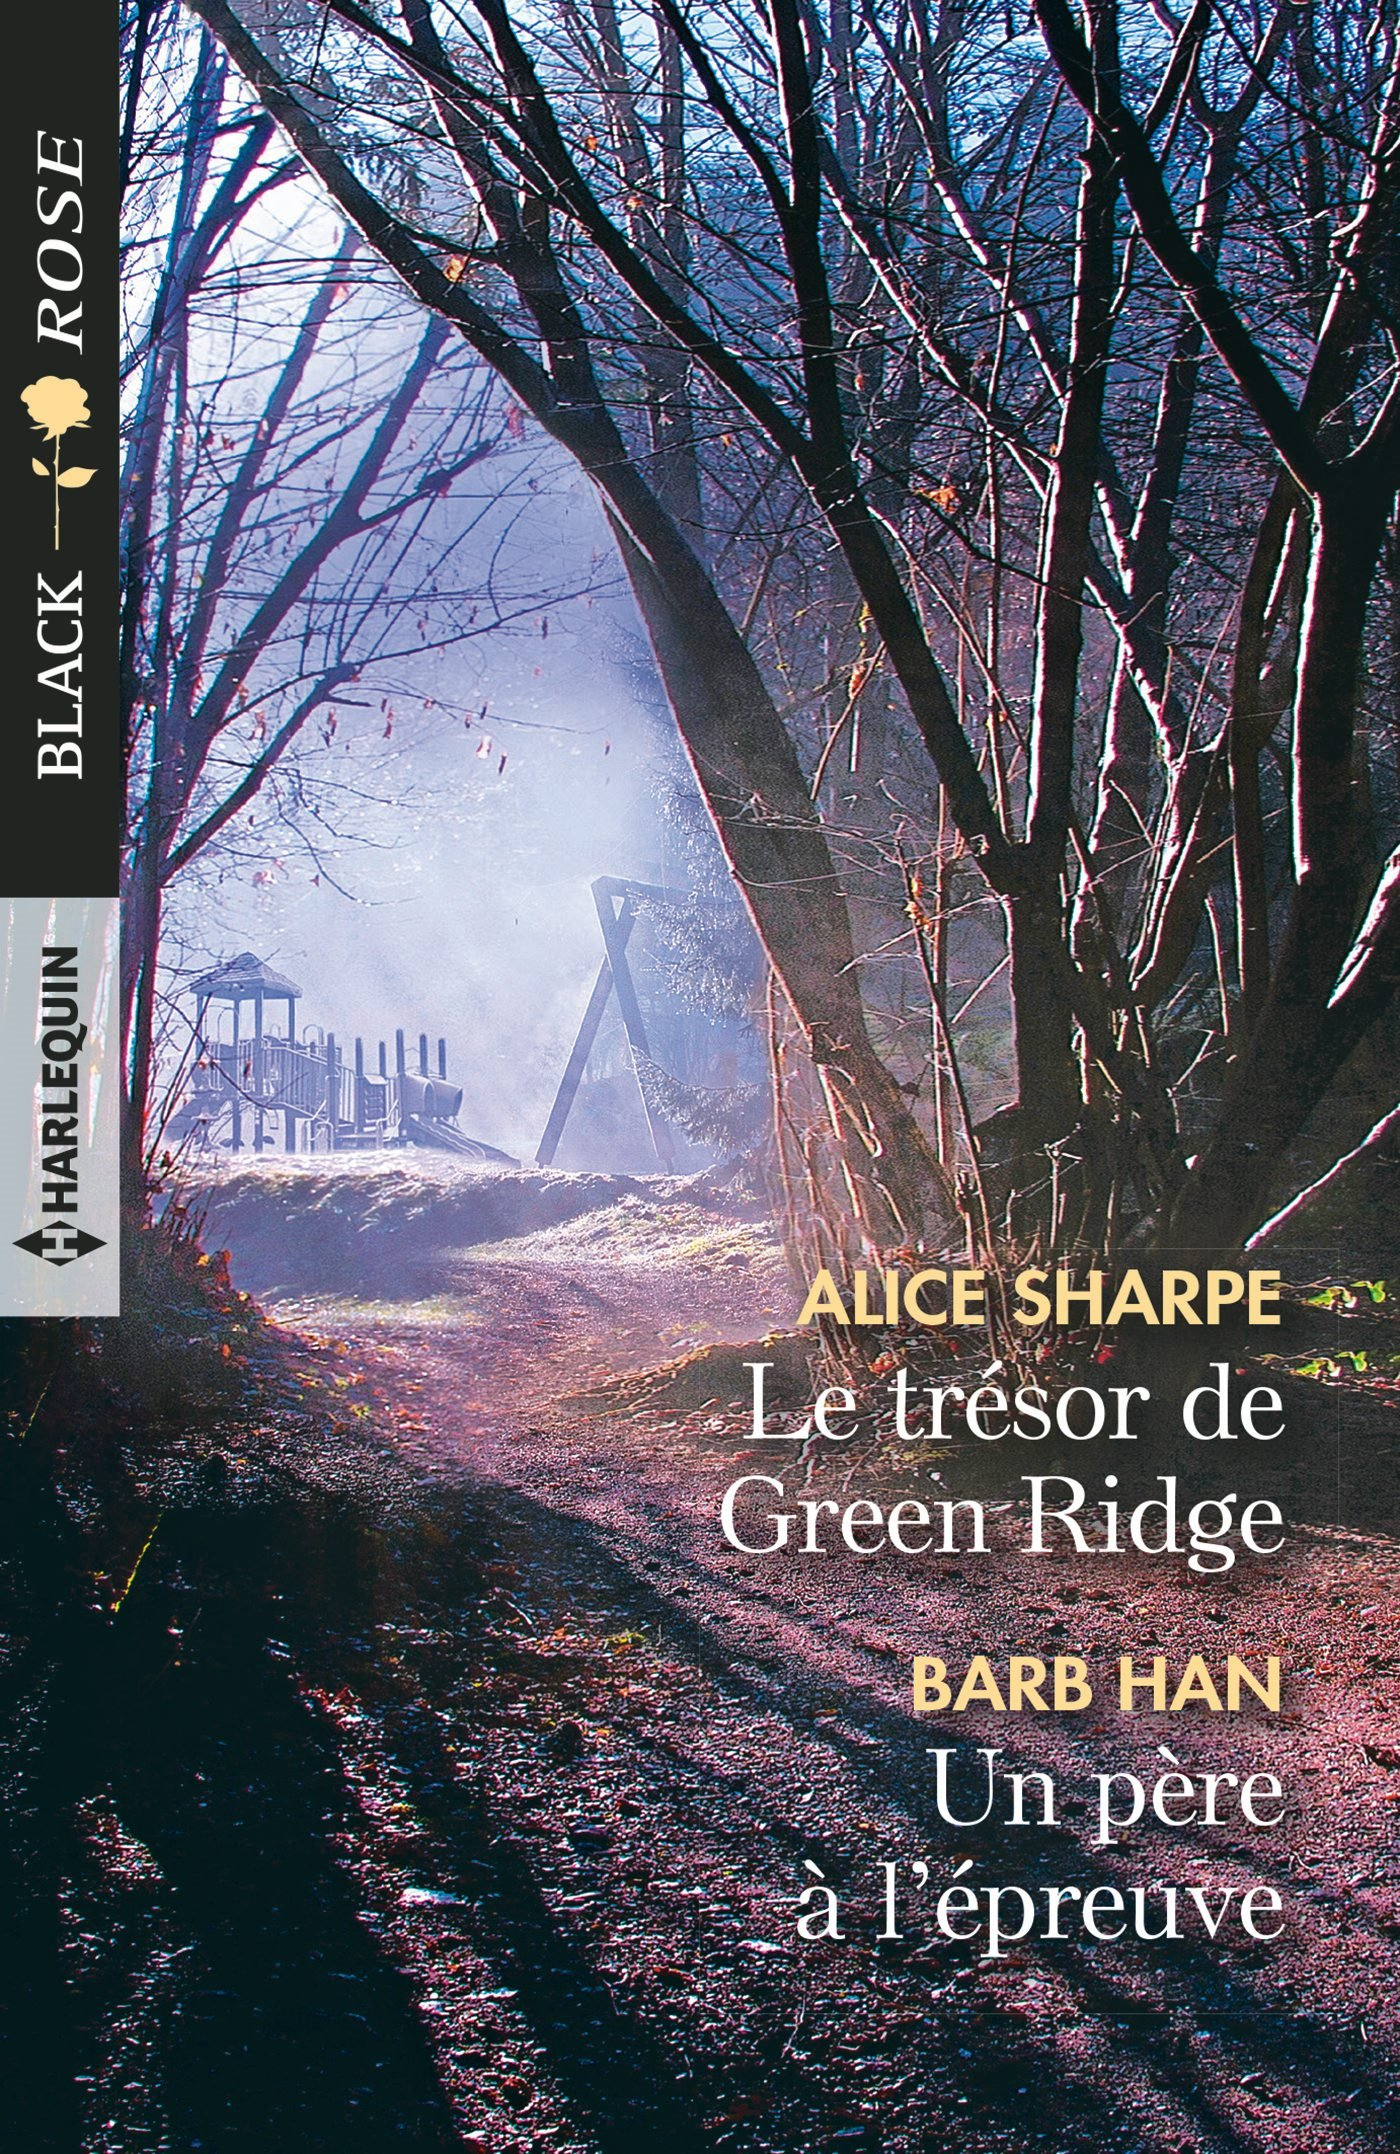 Couverture : Alice Sharpe, Le trésor de Green Ridge, Harlequin